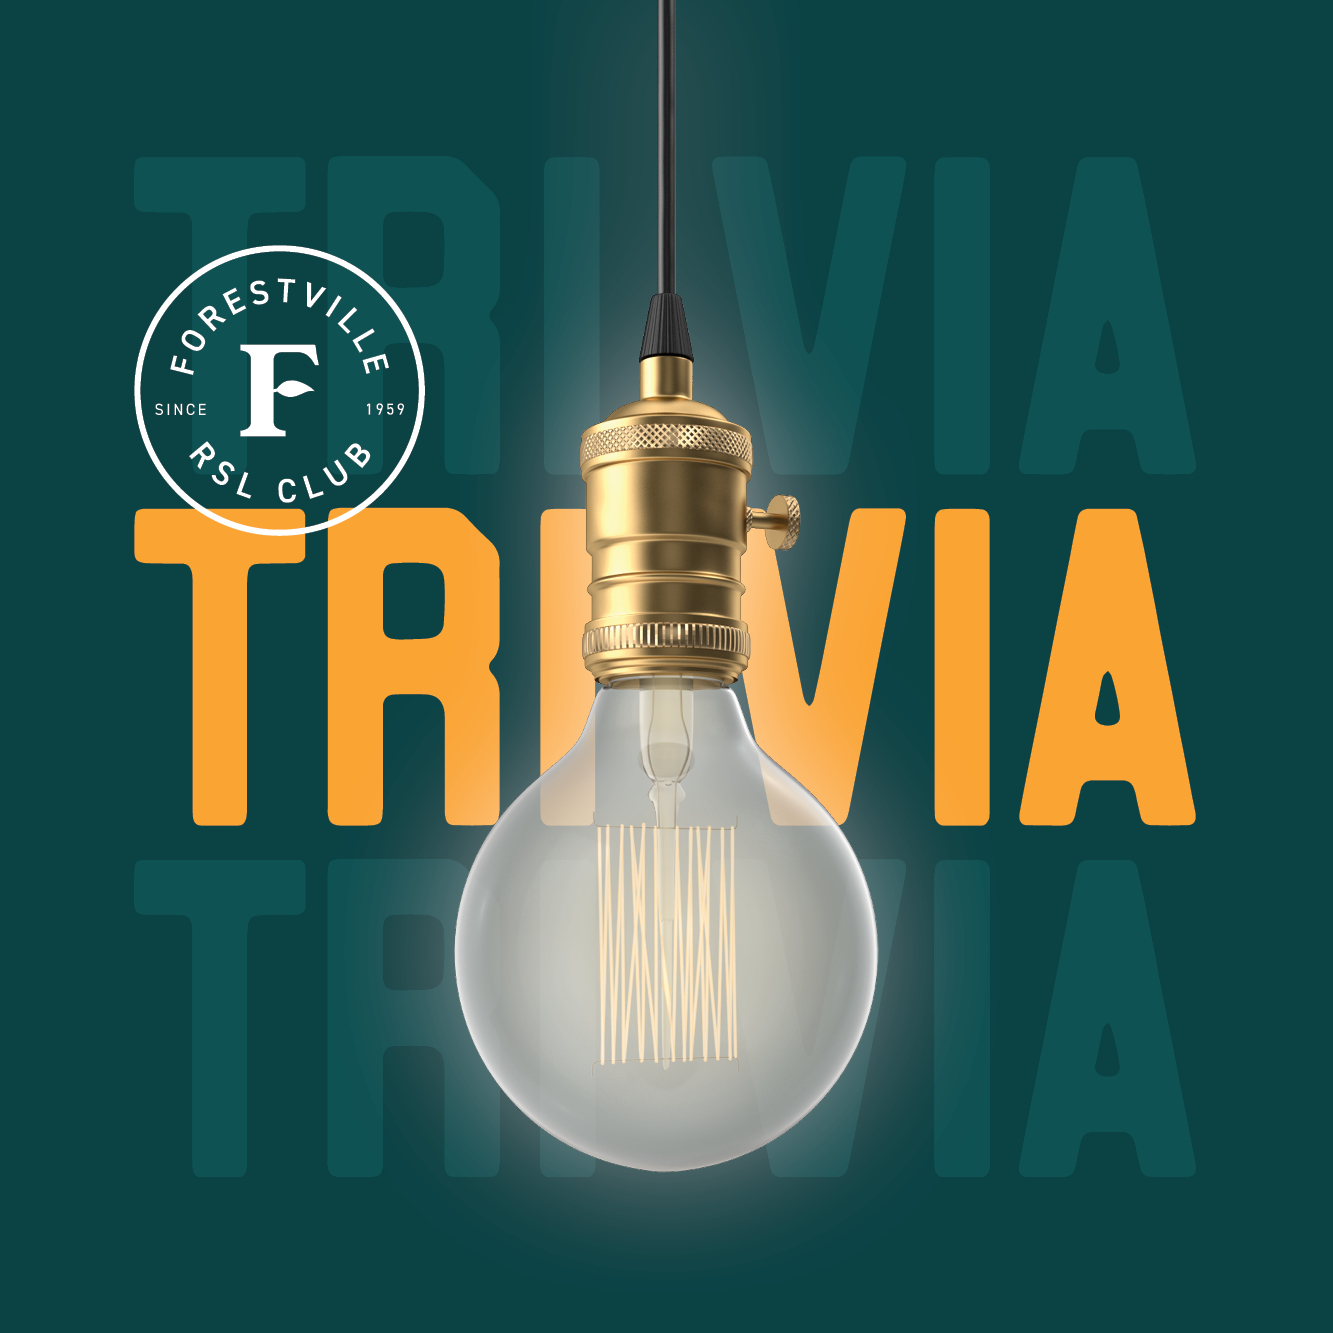 Stay tuned - Trivia will be returning to Forestville RSL Club very soon...